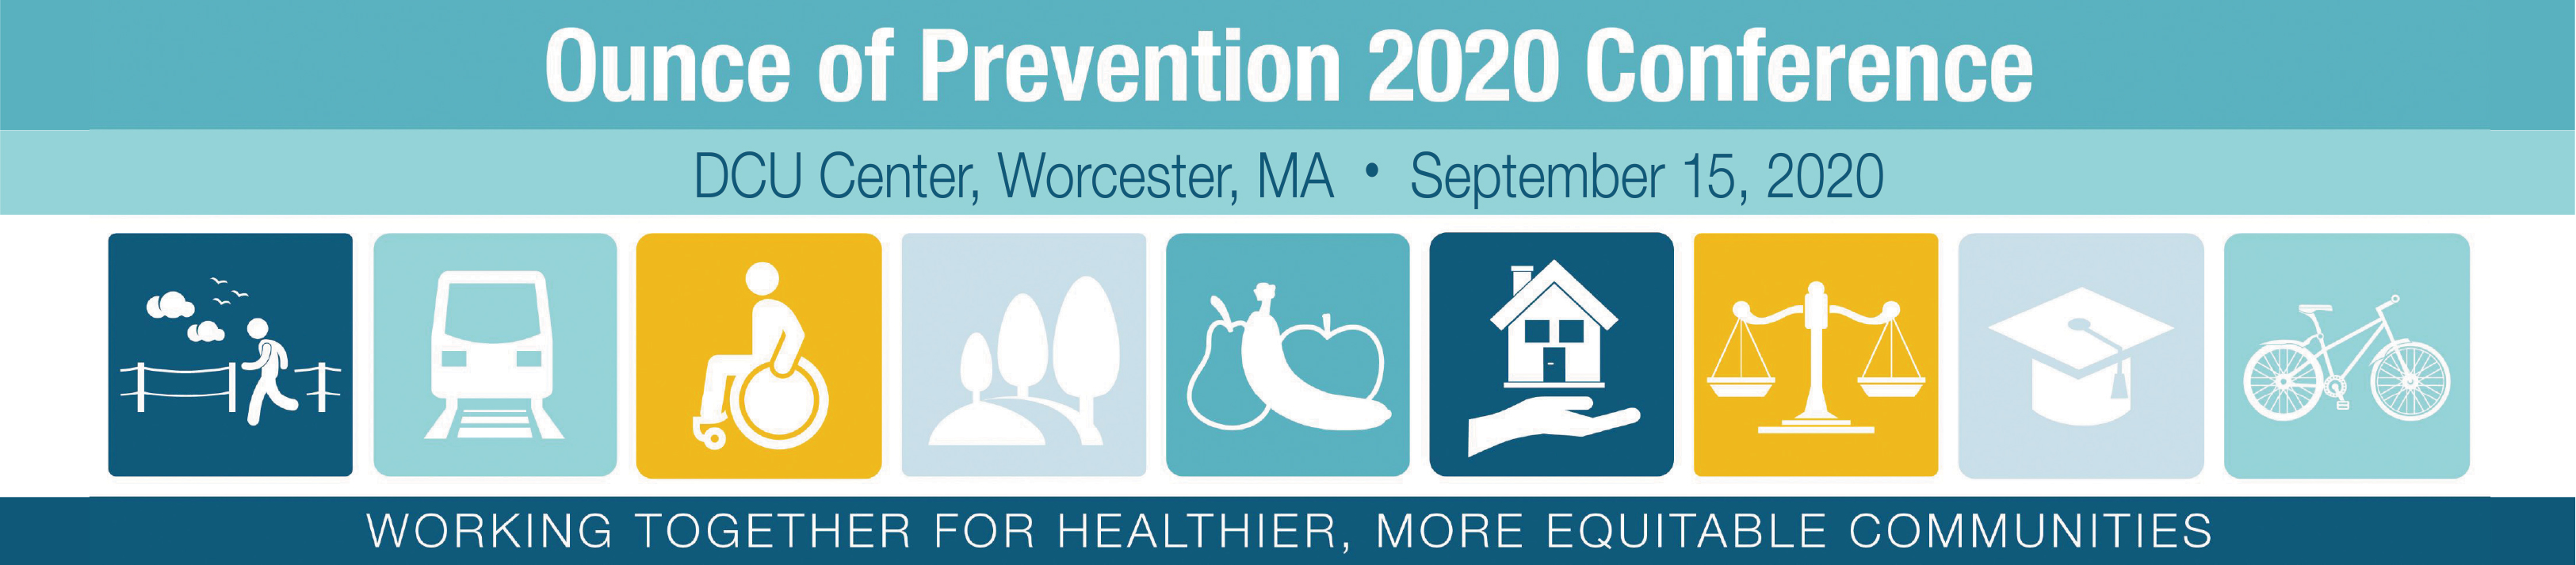 Ounce of Prevention Conference 2020